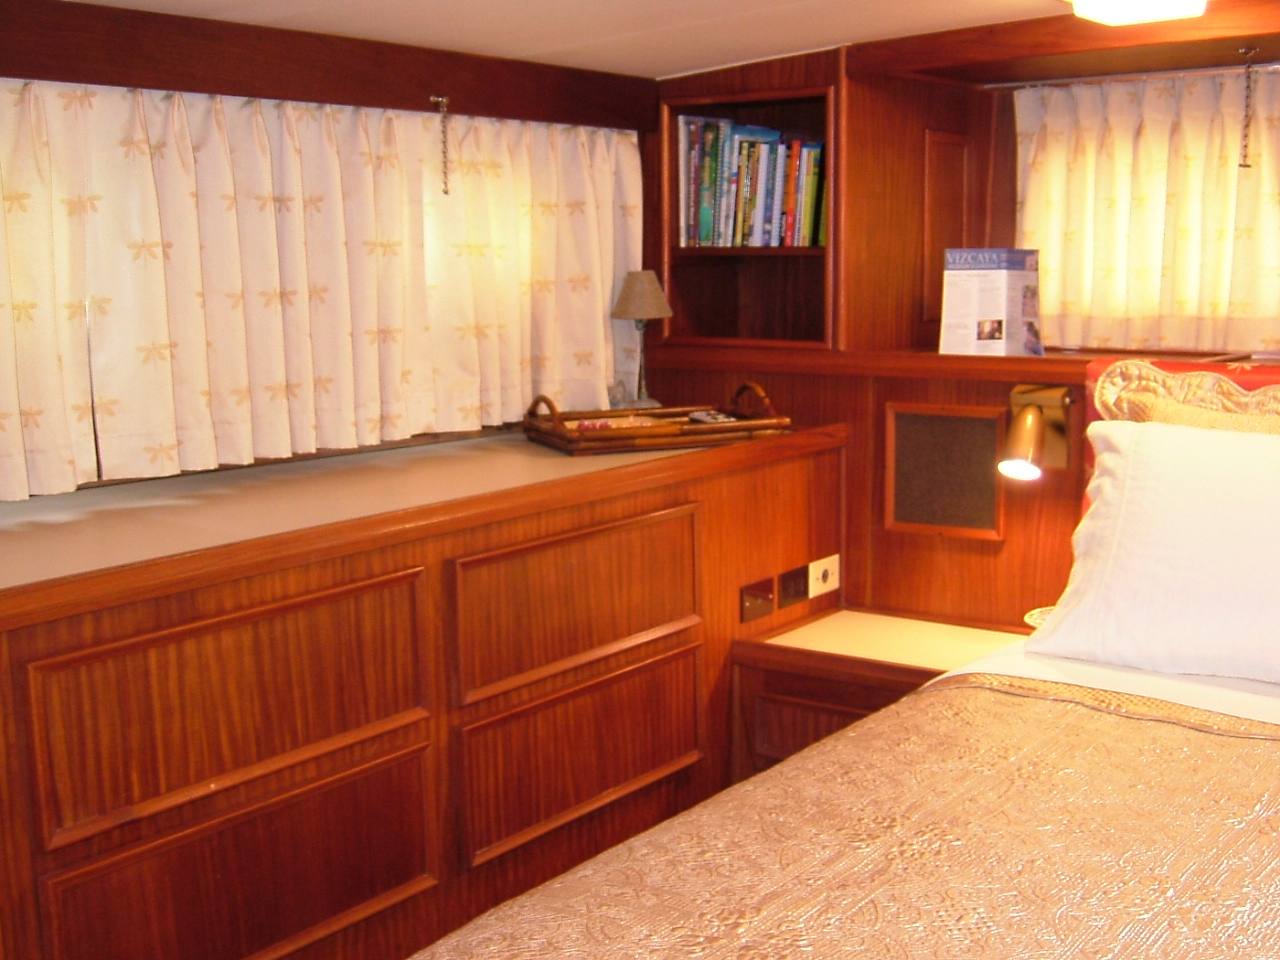 2 Master Stateroom, looking to starboard